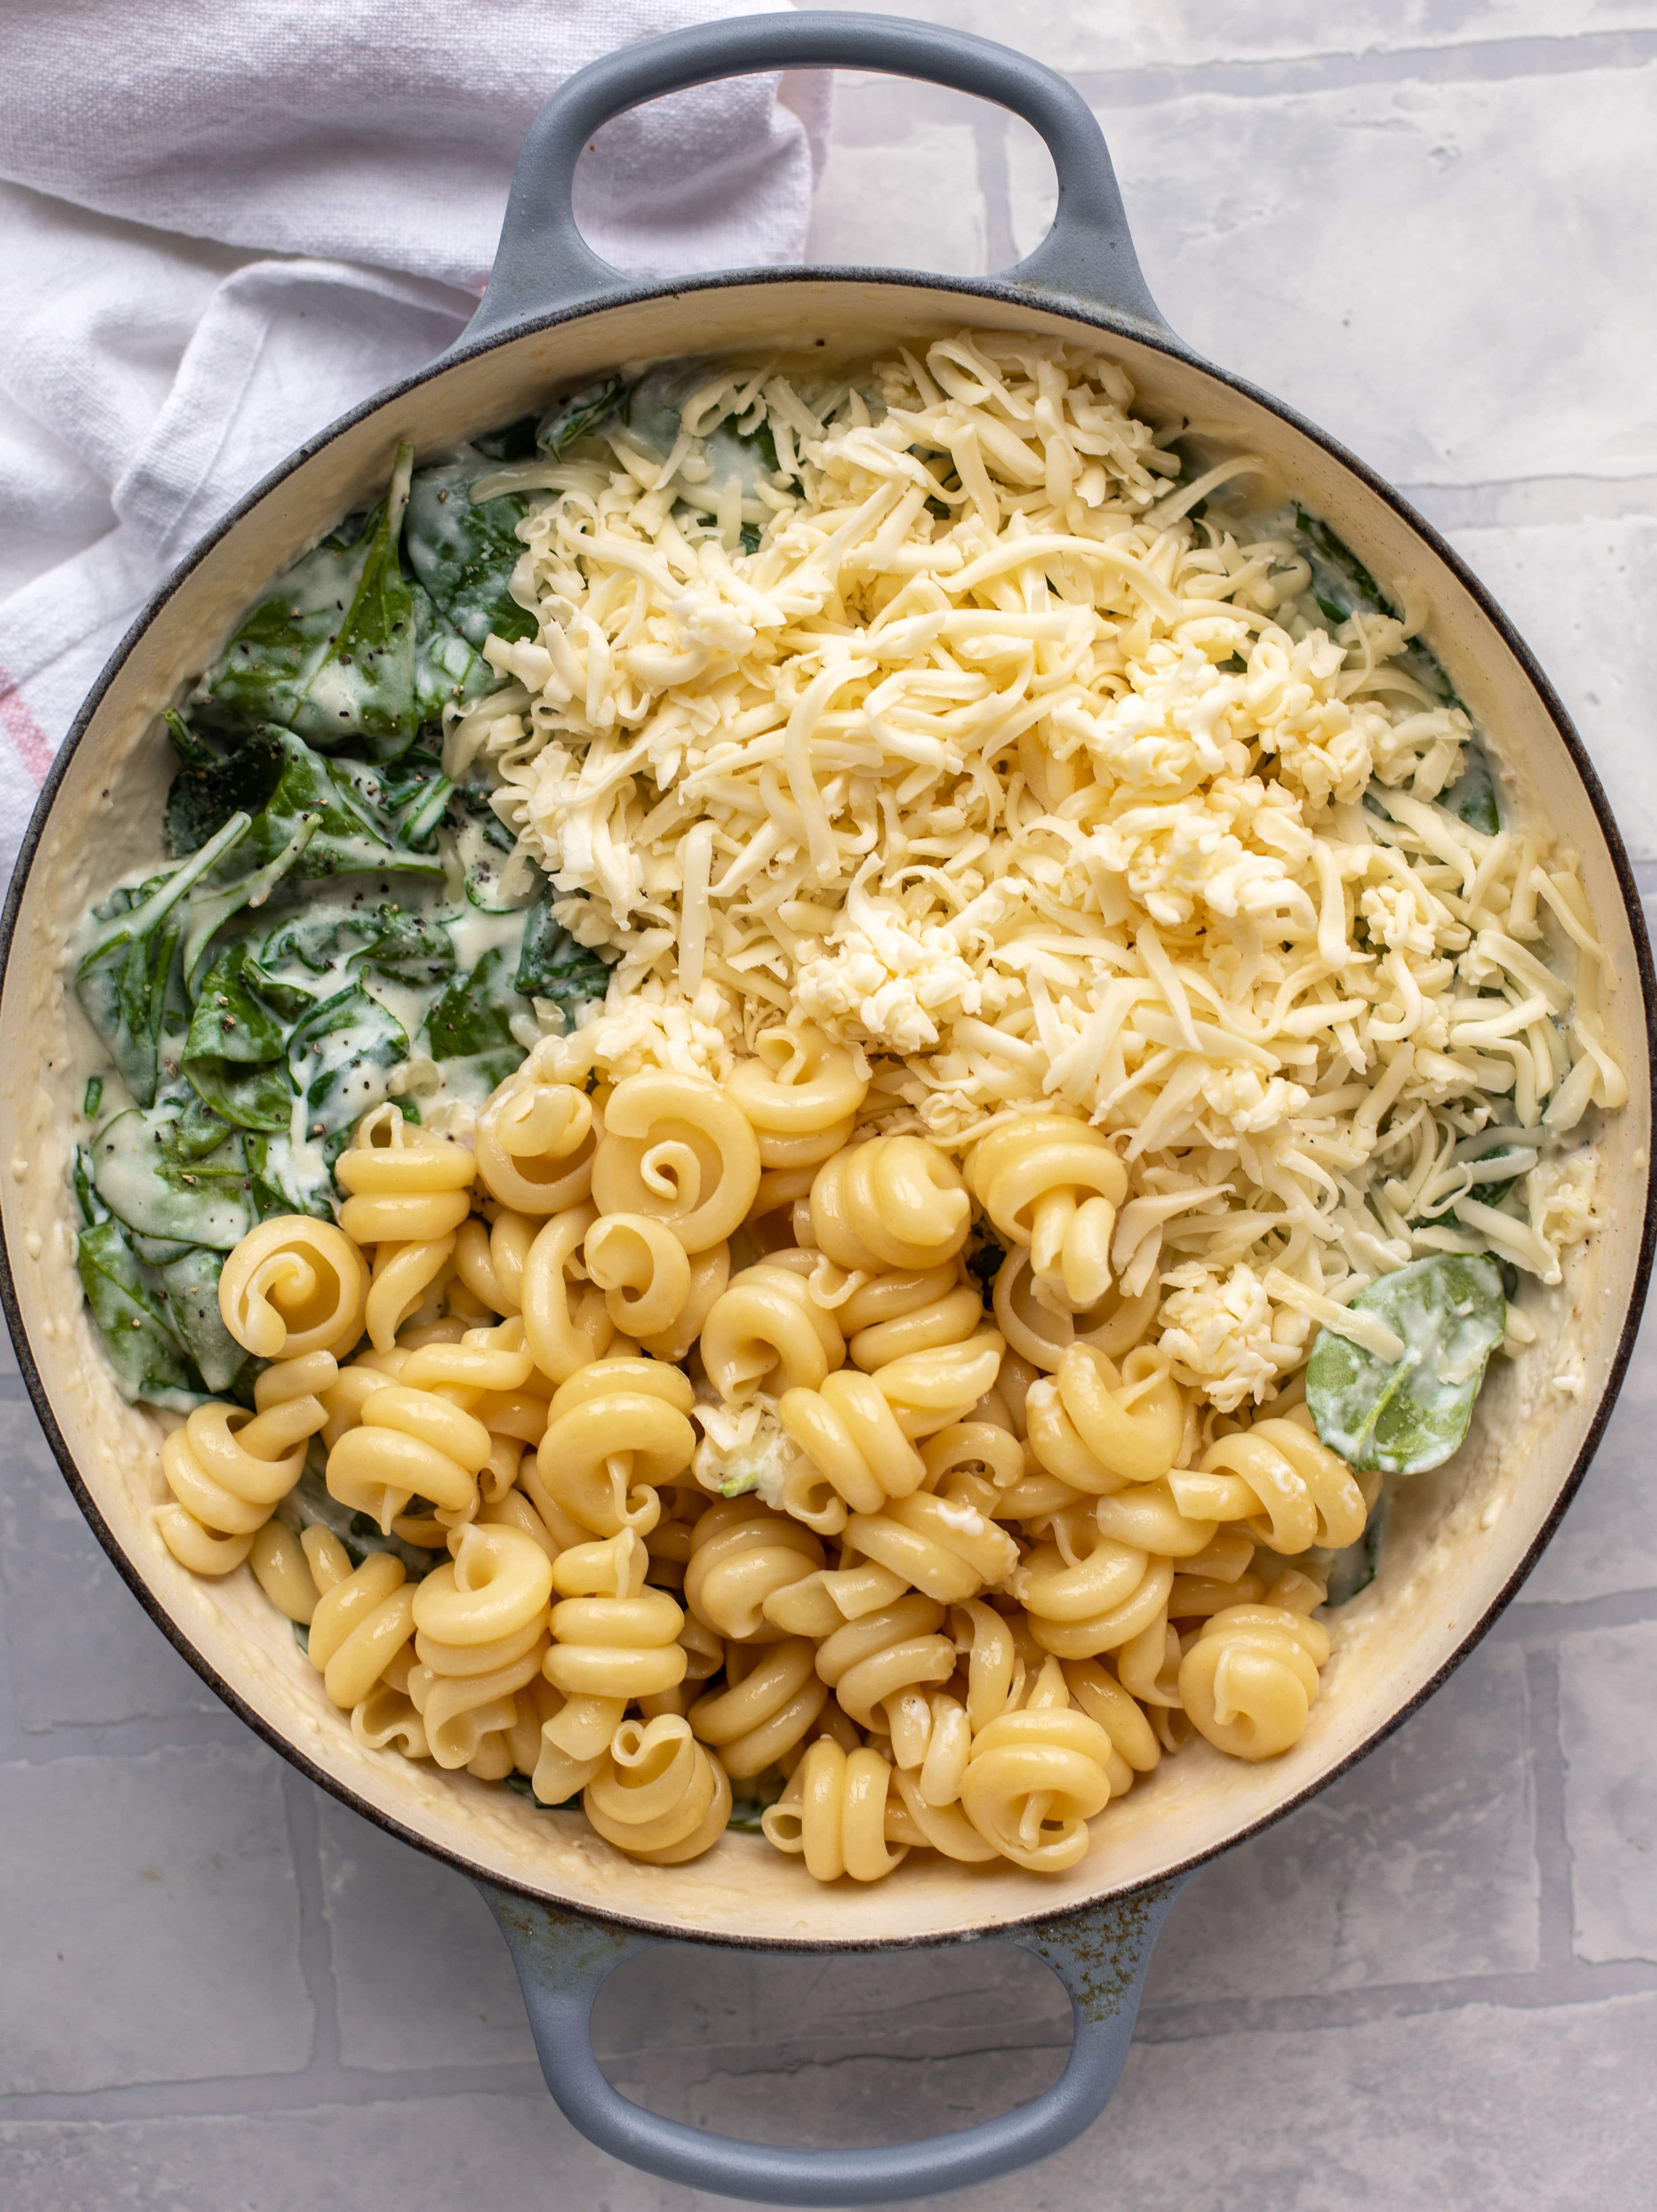 This creamed spinach mac and cheese is a dreamy, cheesy mac and cheese dish with tons of fresh baby spinach! Super comforting and flavorful.